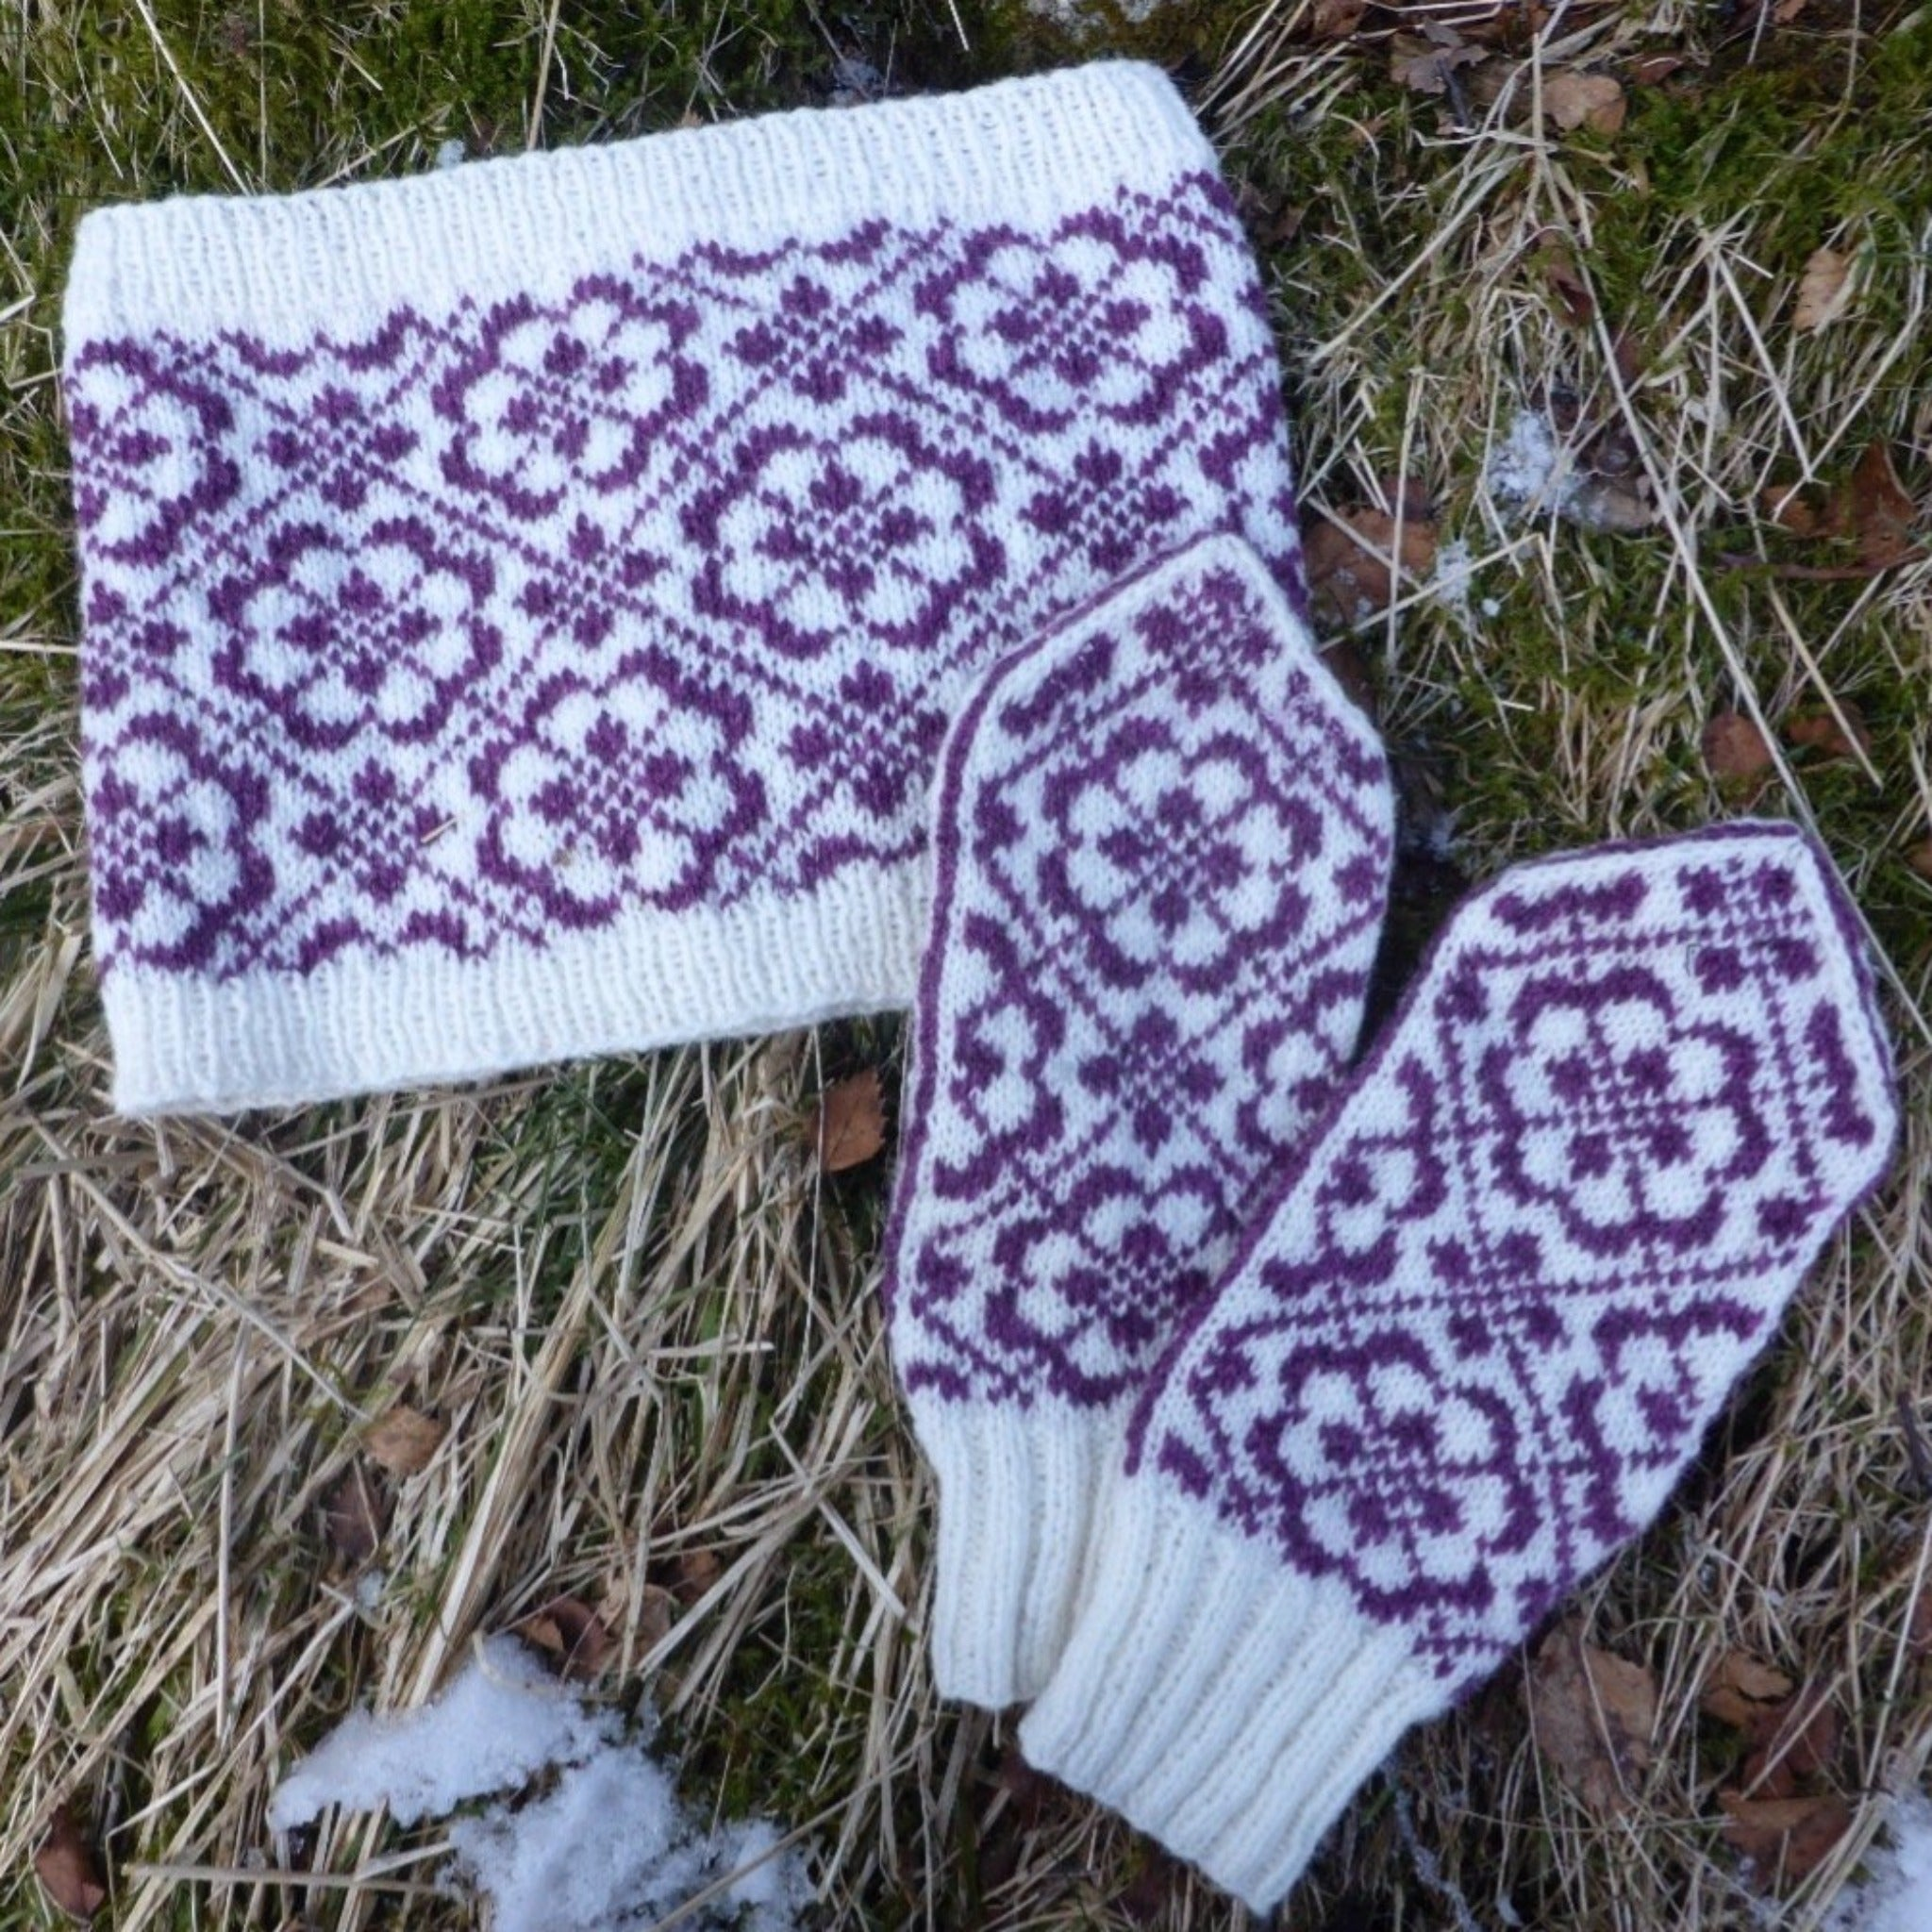 Buska Mittens  and Cowl Set - Pattern Only -  Digital Pattern in English/Norwegian - Norwegian mittens - Norwegian design